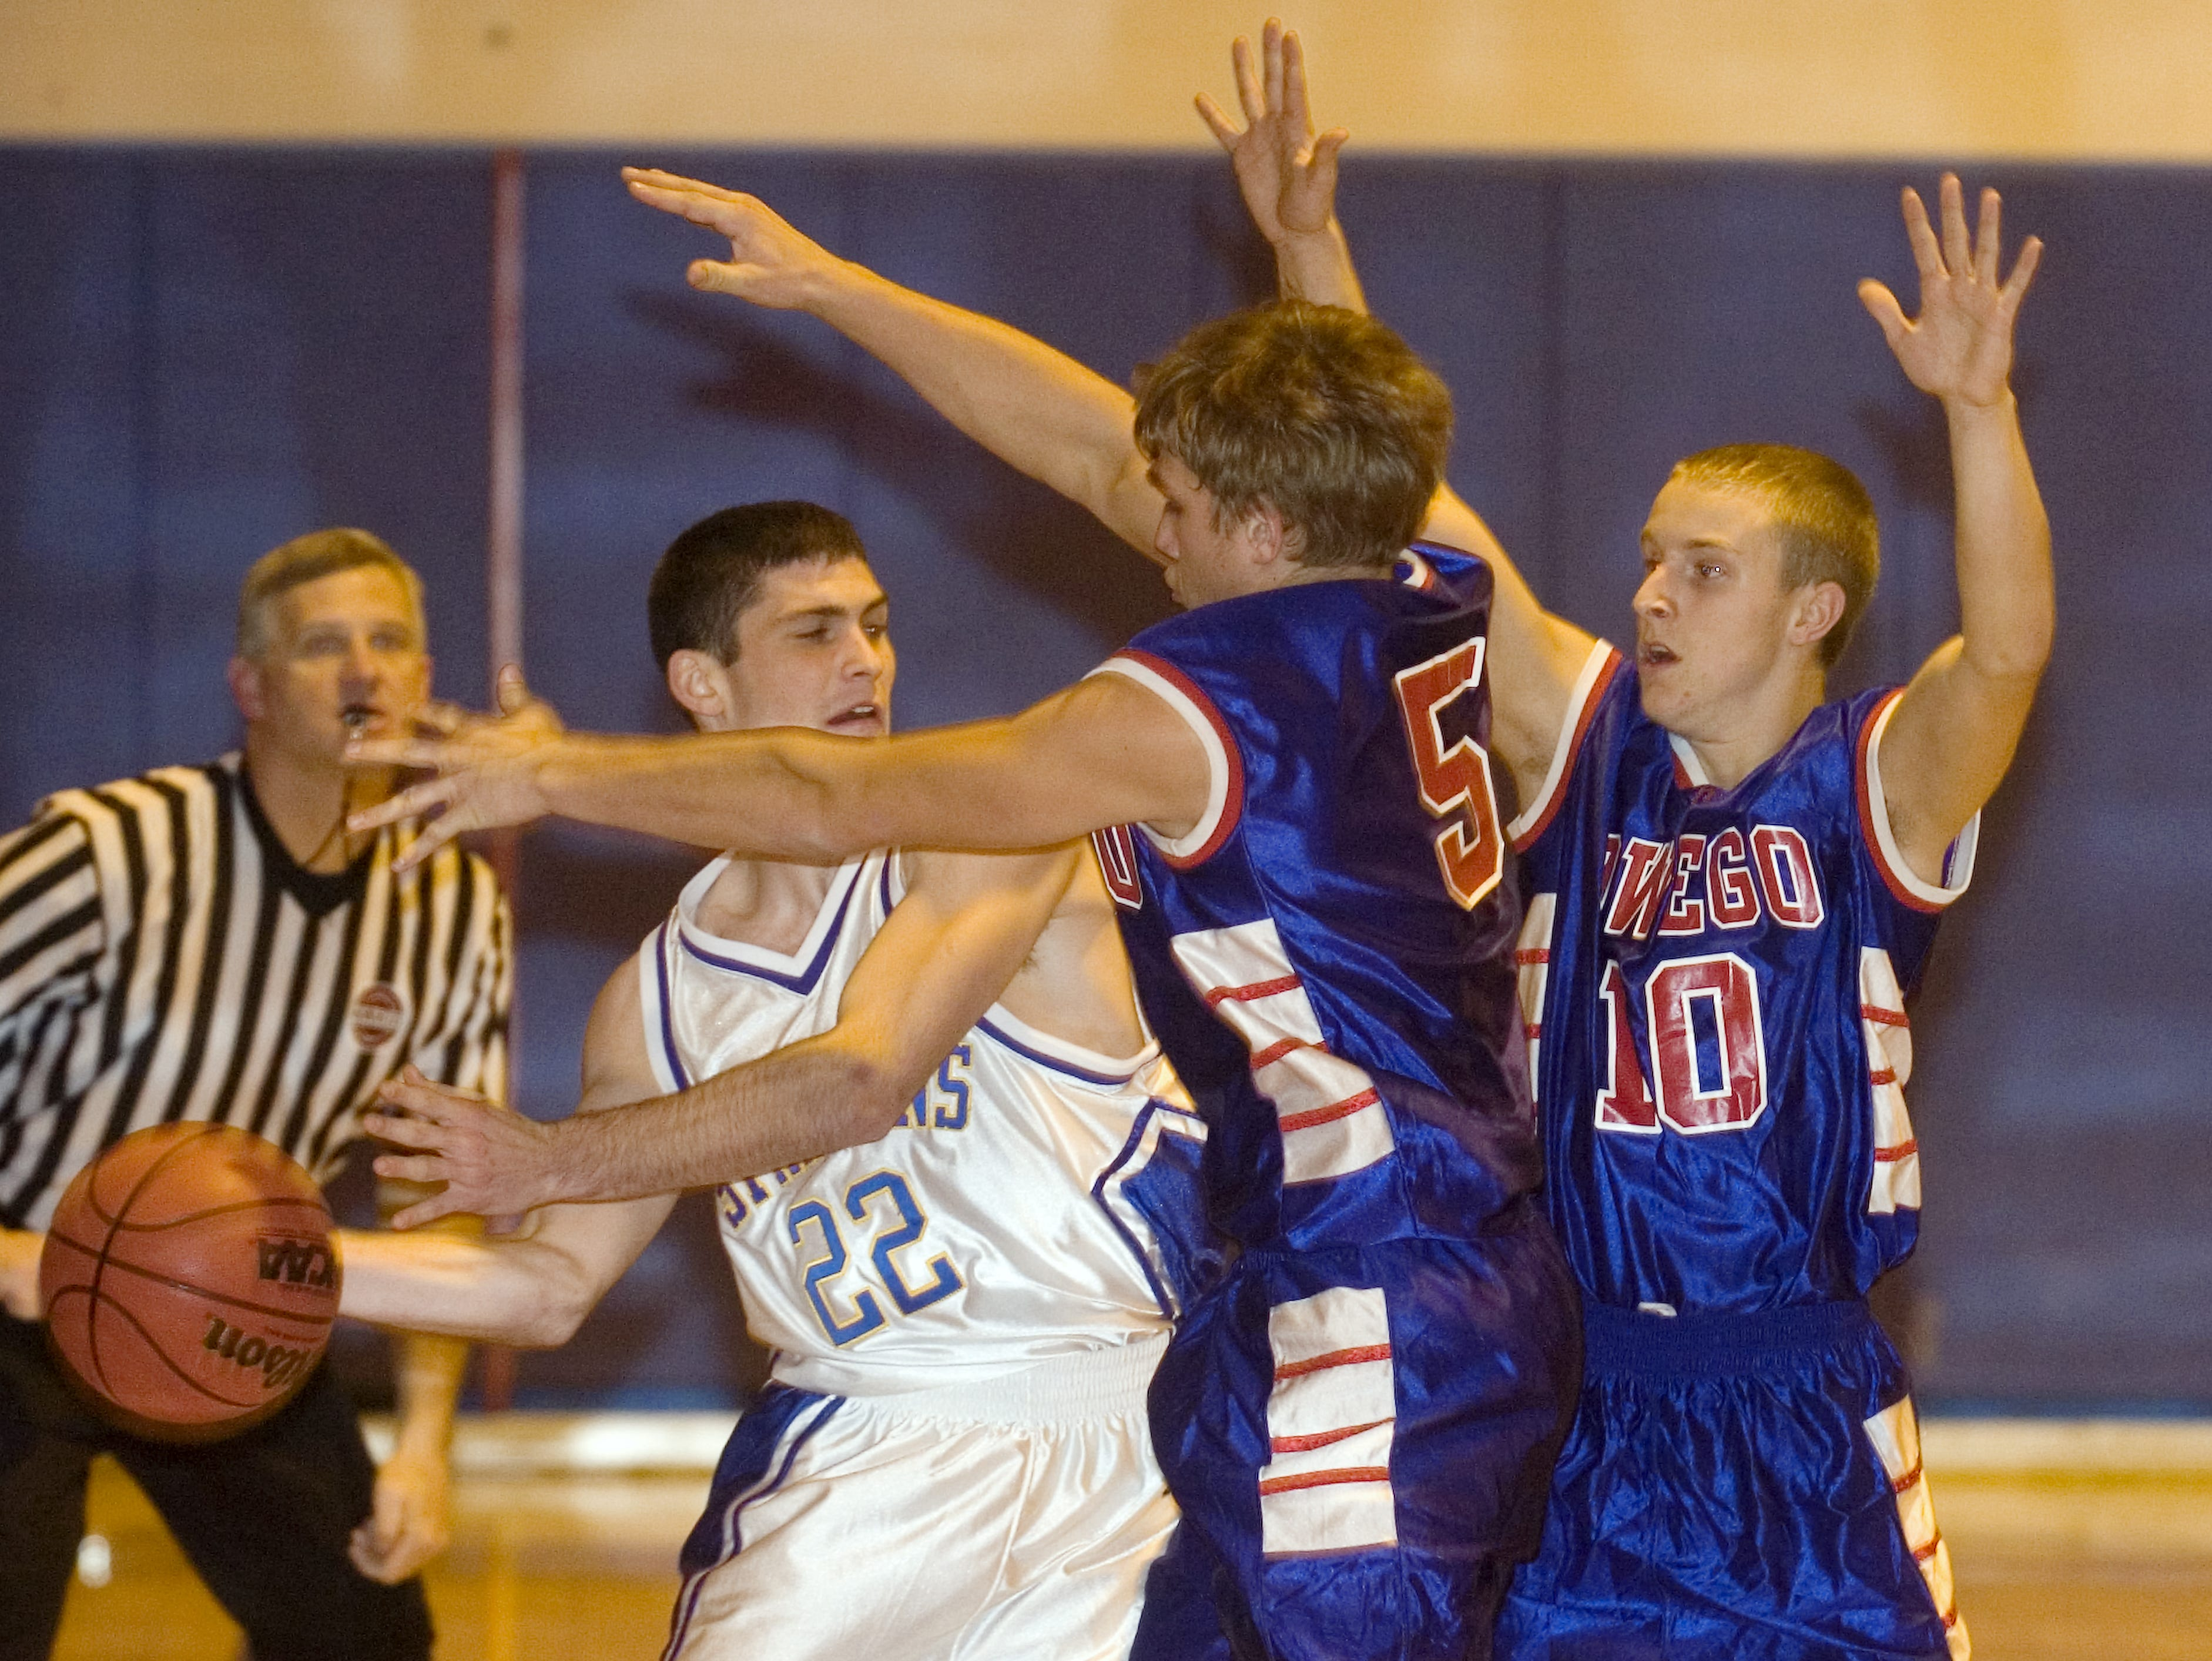 2008: Owego Free Academy's Kevin Kie, right, and Harley Edwards double team Maine-Endwell's Joe Powell in the first quarter of Wednesday's game at M-E.